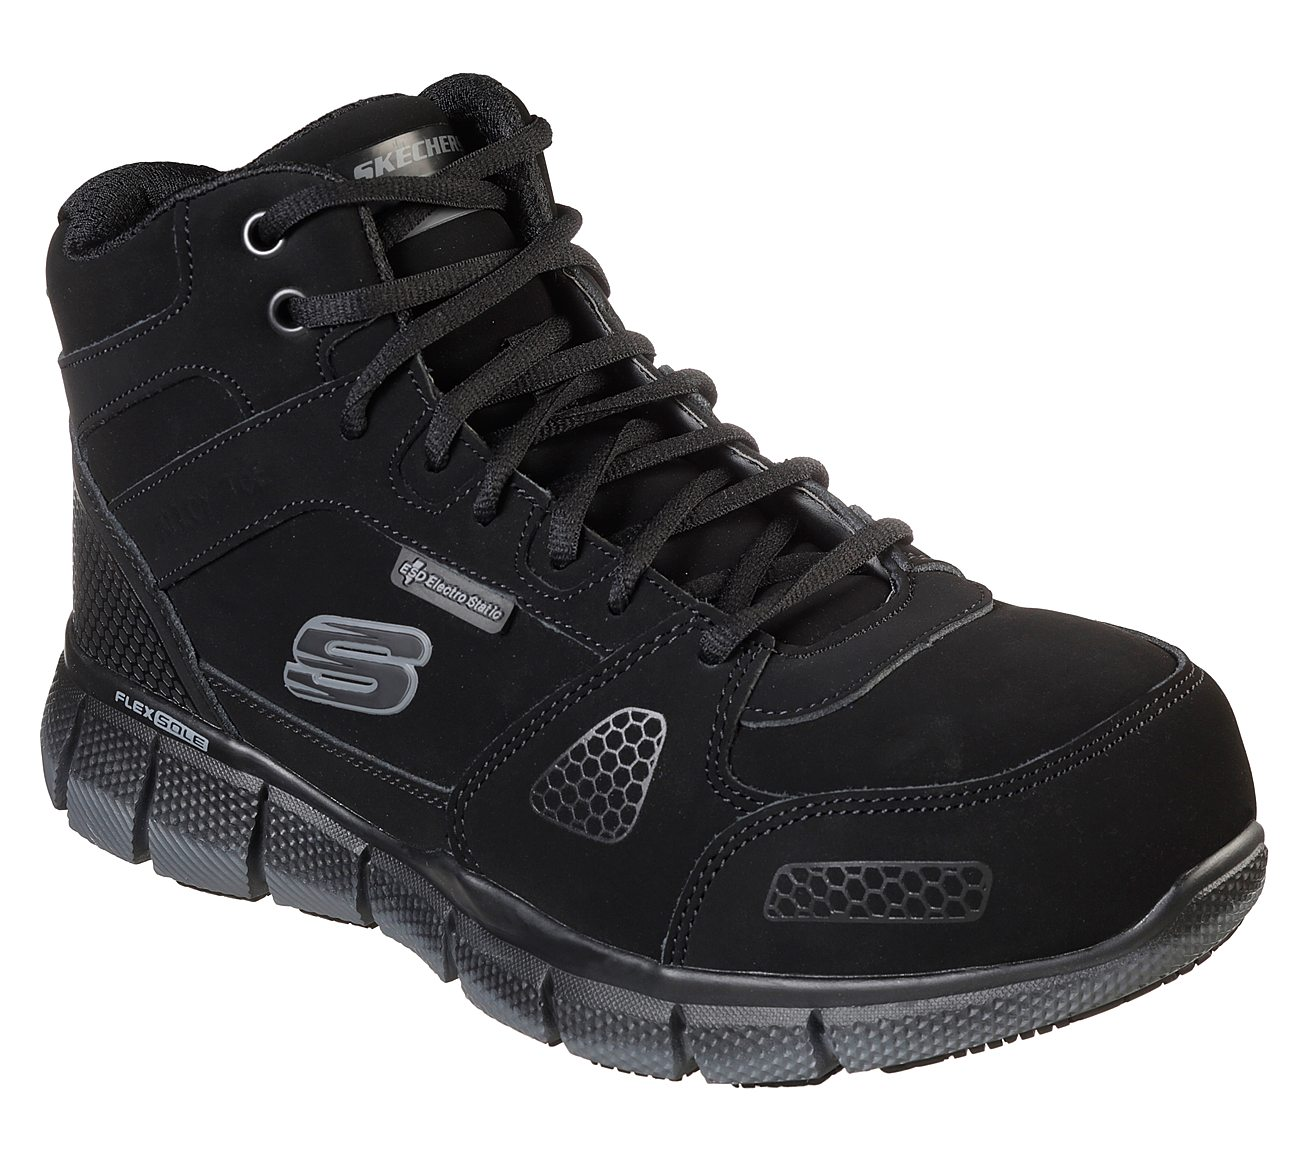 Skechers Work Telfin Steel Toe Work Shoes Mens